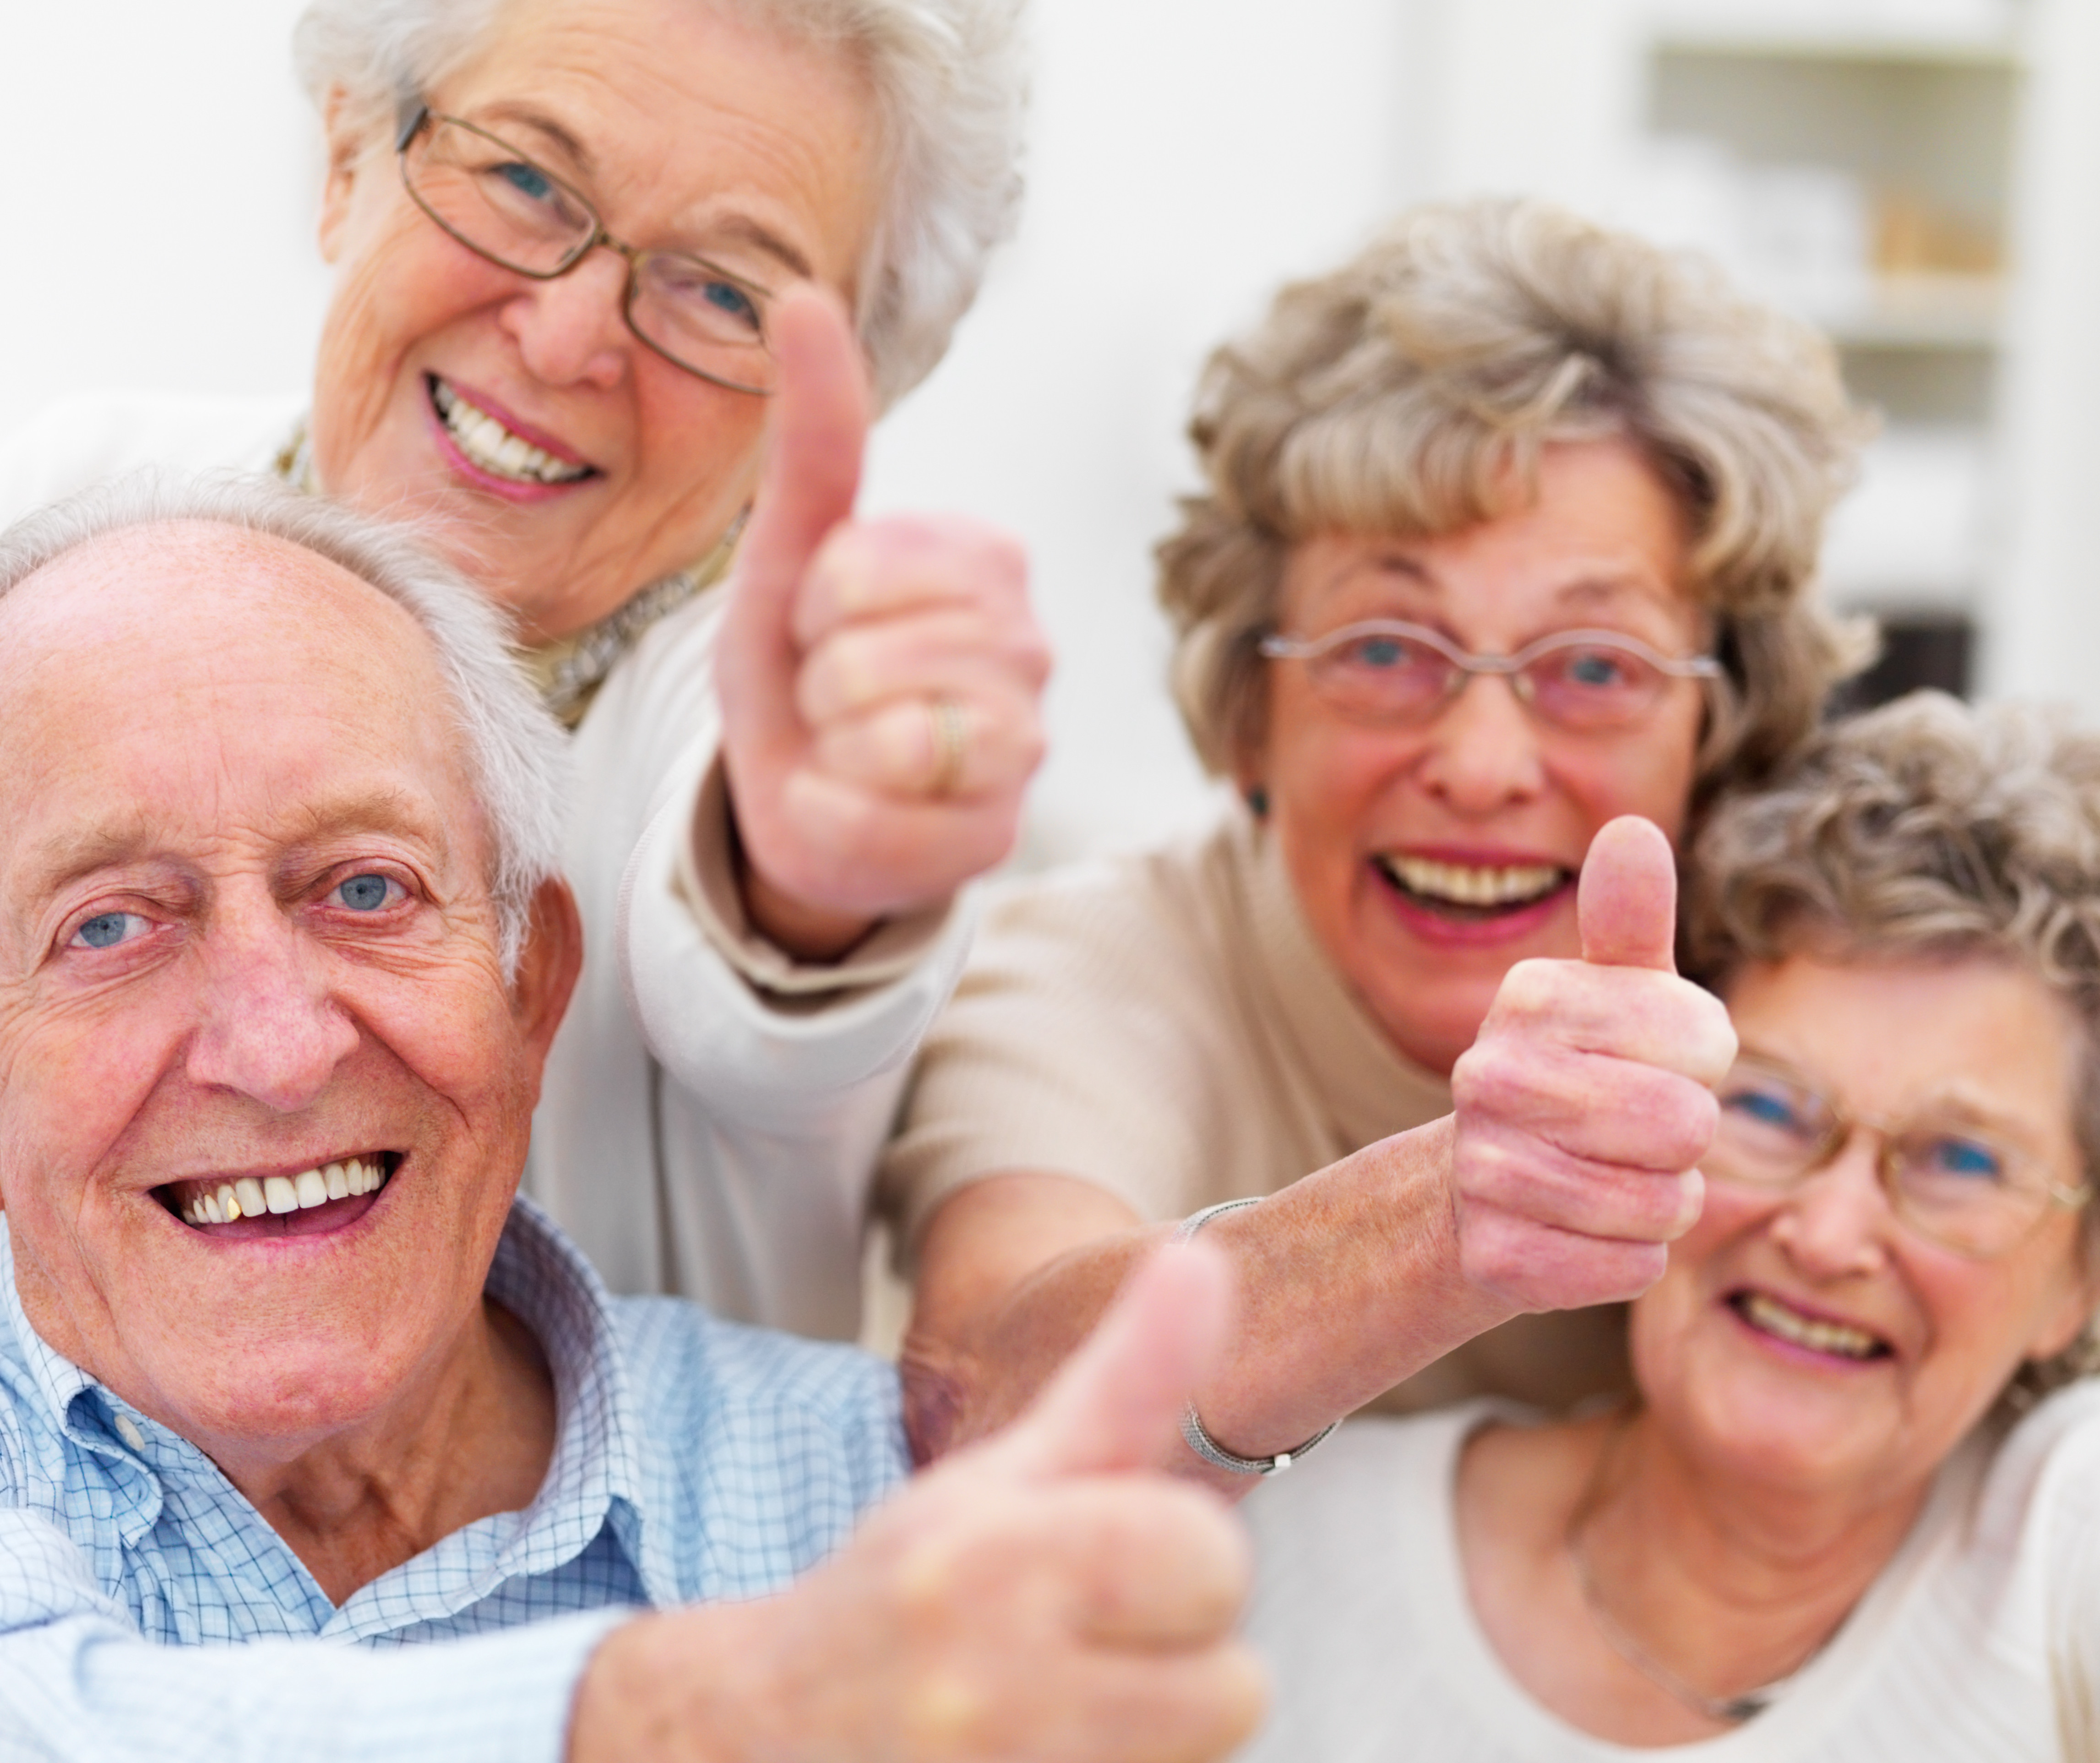 http://tlcsr.com/blog-Senior -Care-Staff-Thumbs-Up